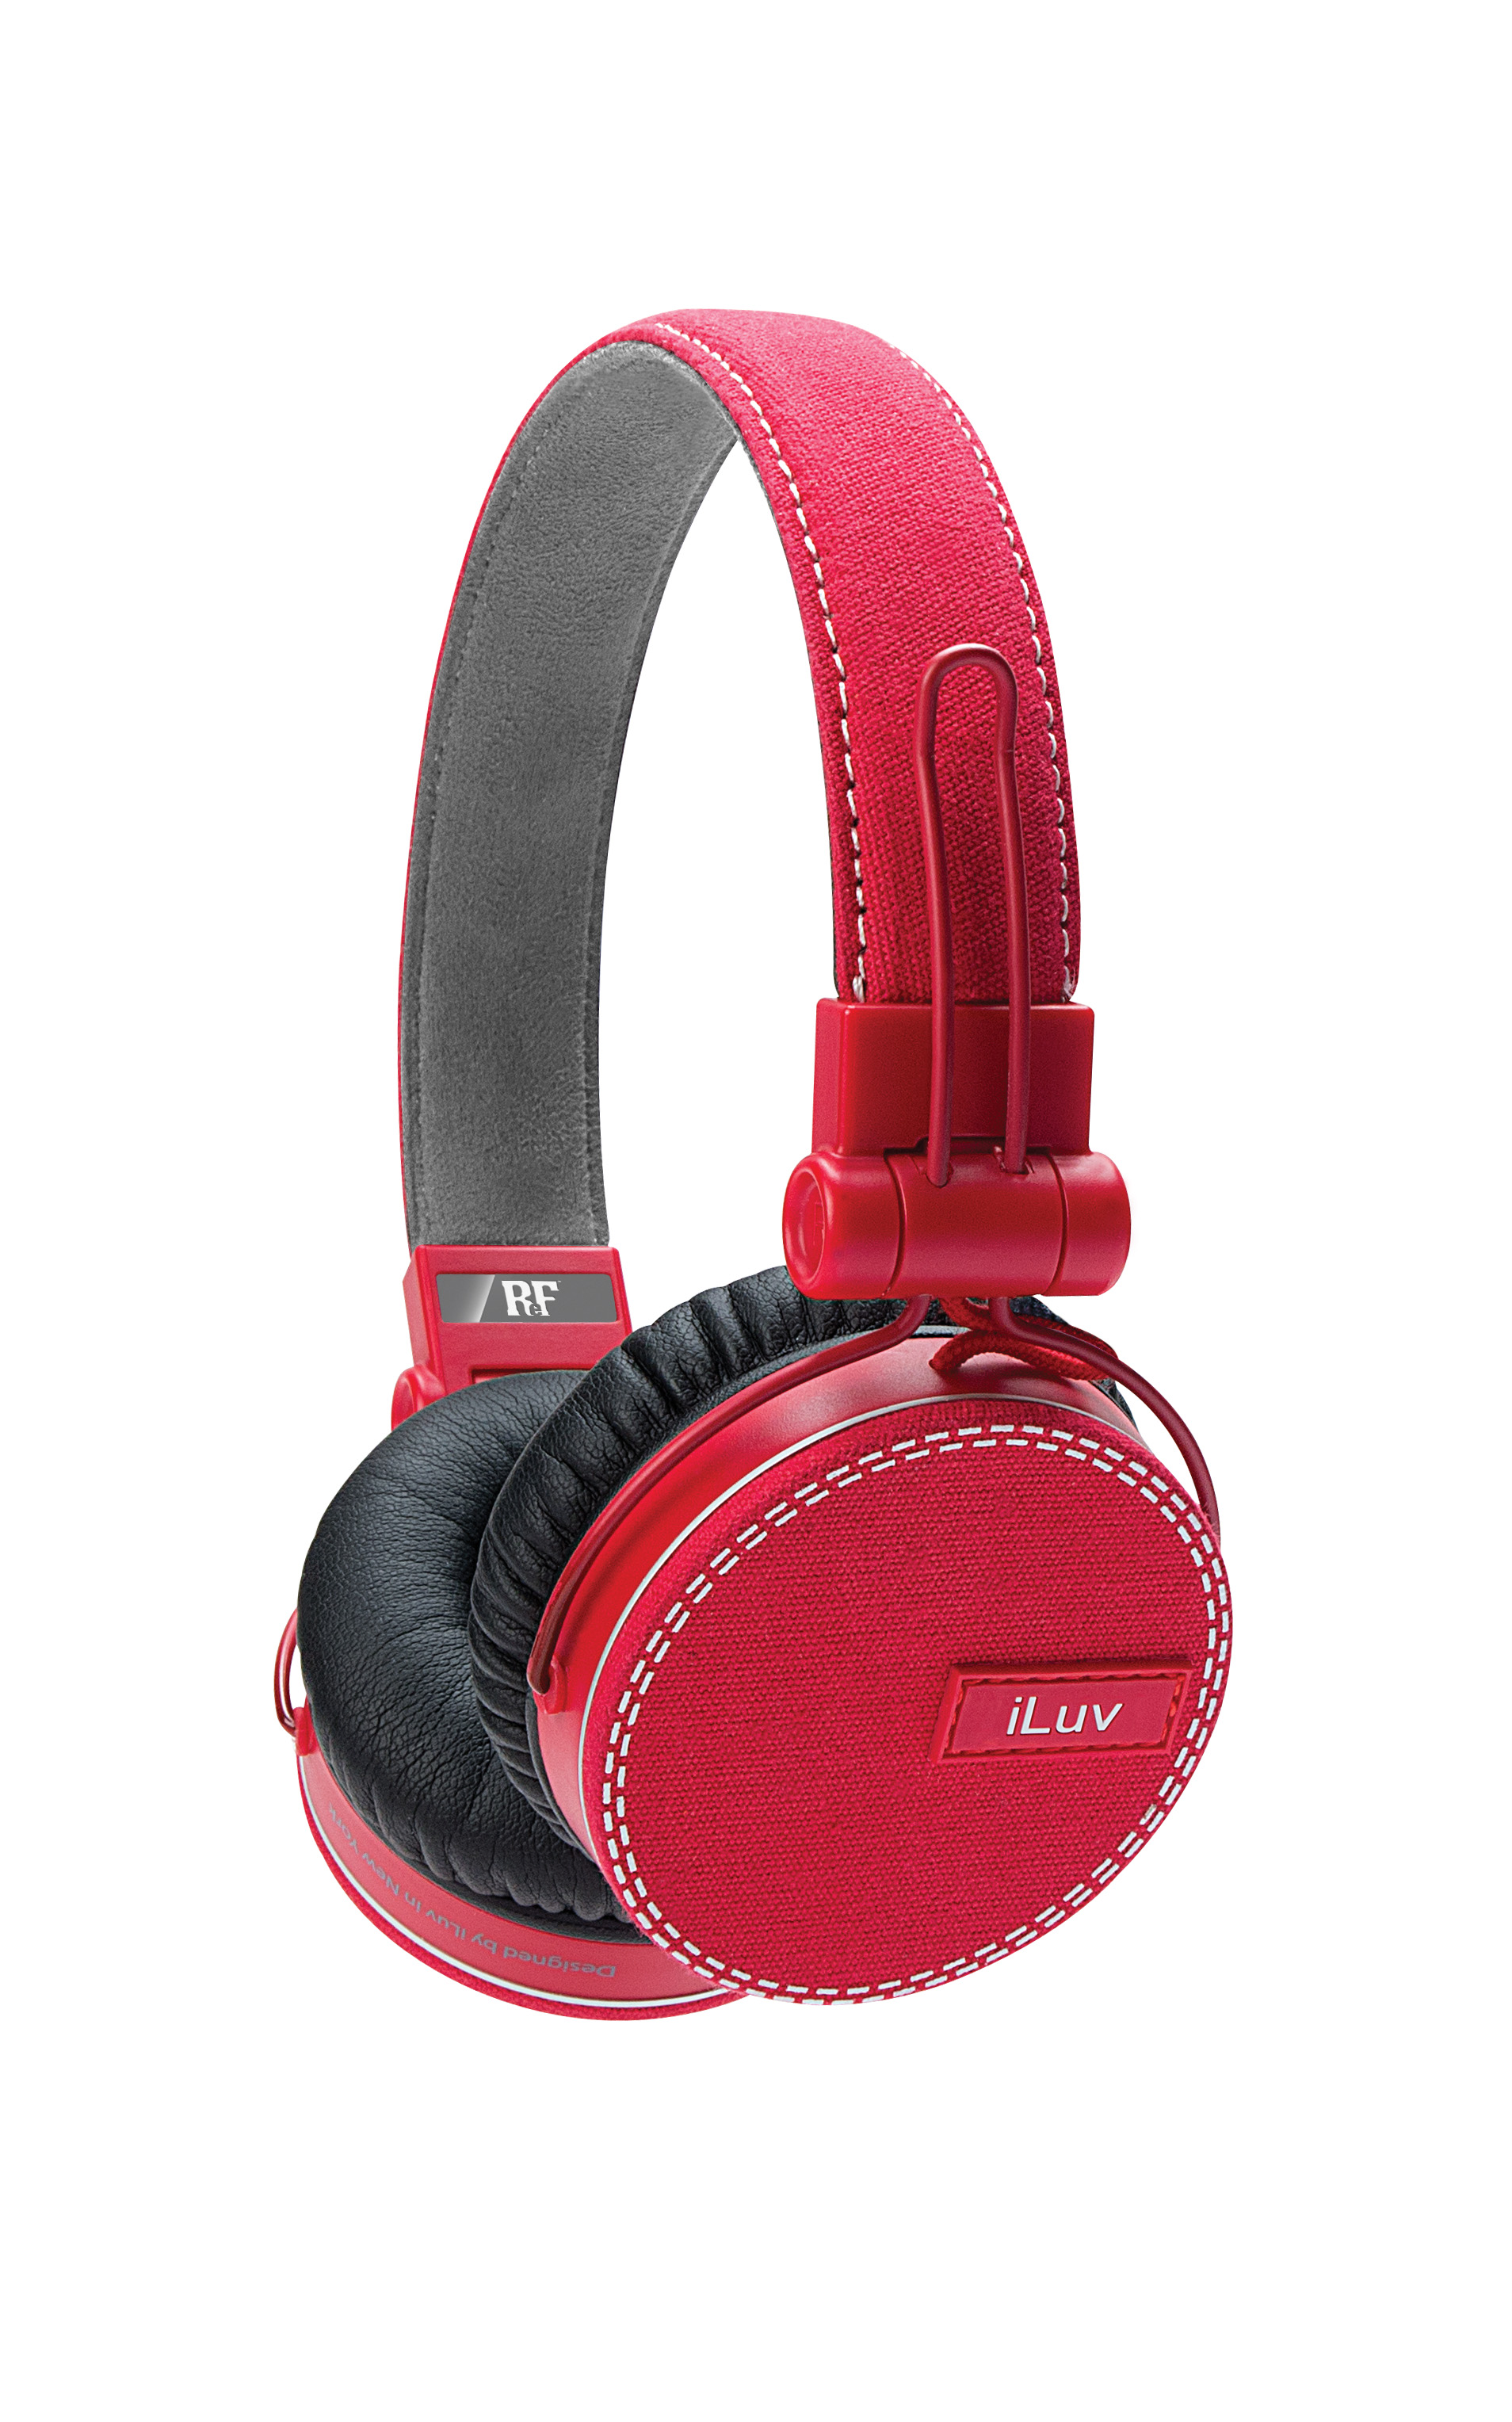 iLuv Headphones